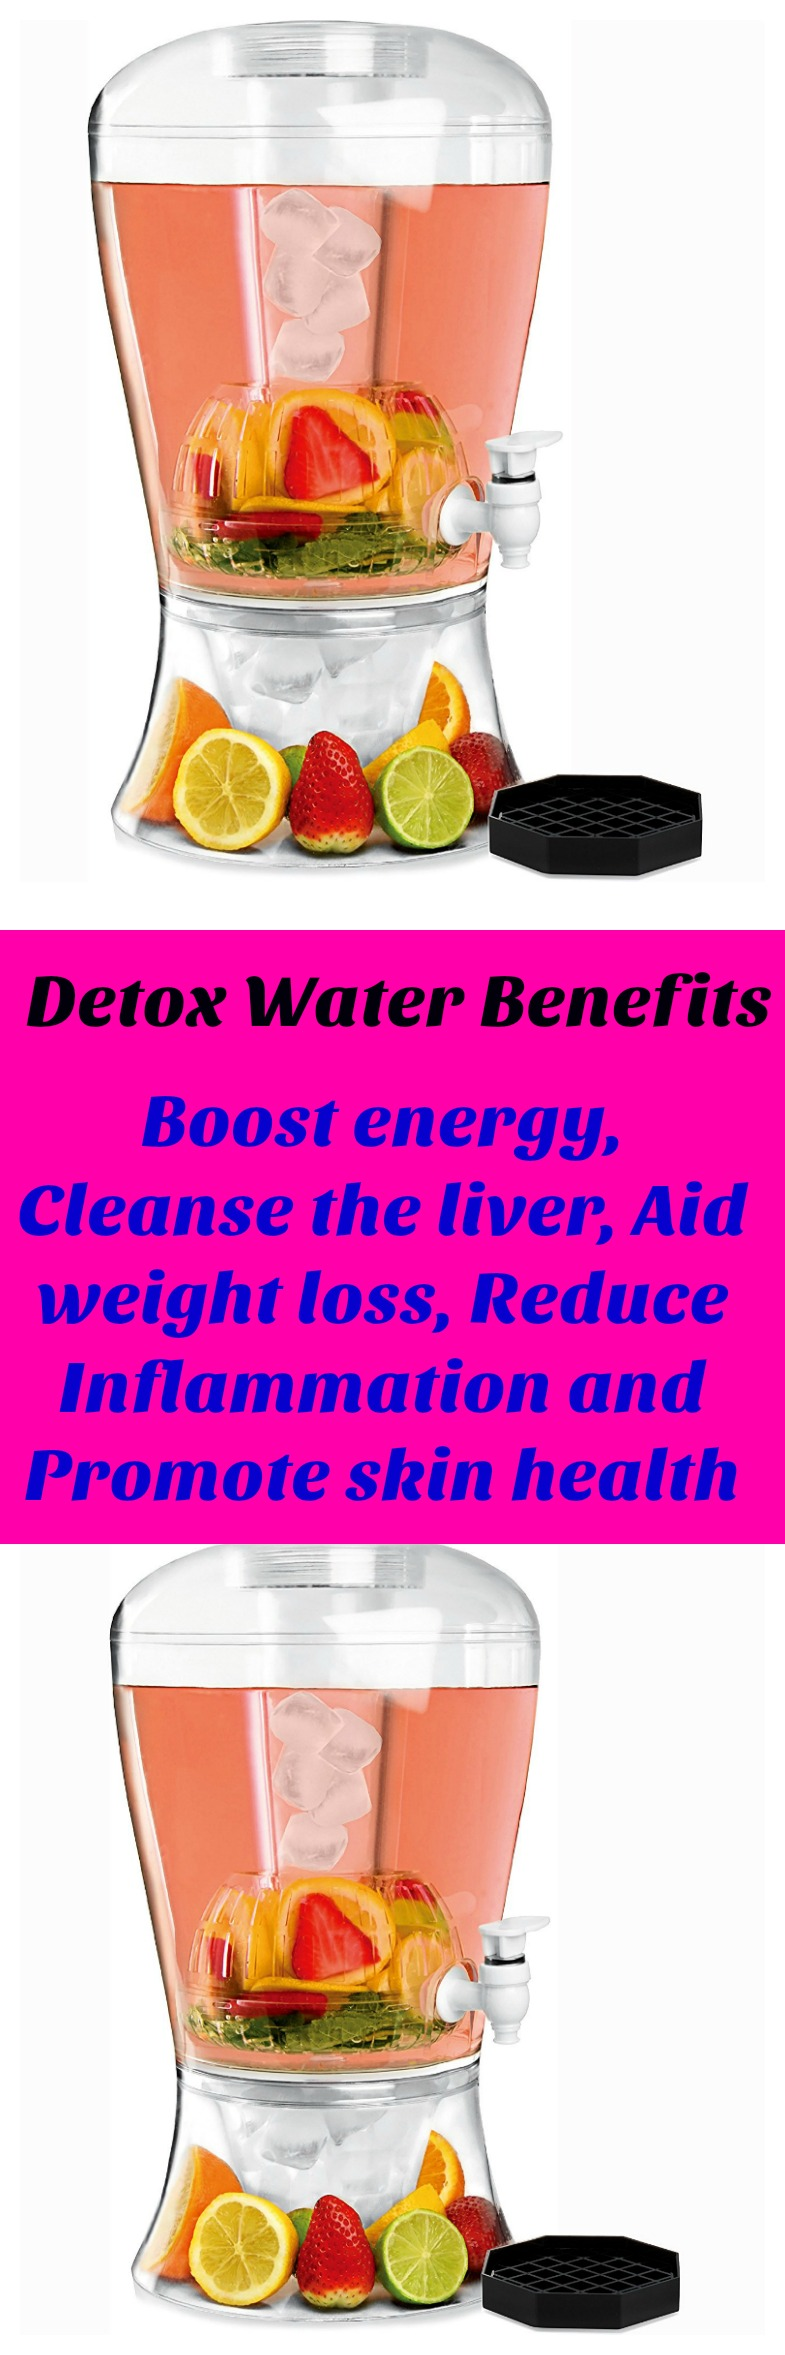 Detox Water Benefits For Relief Of Belly Bloat Aid Digestion Mild Diuretic